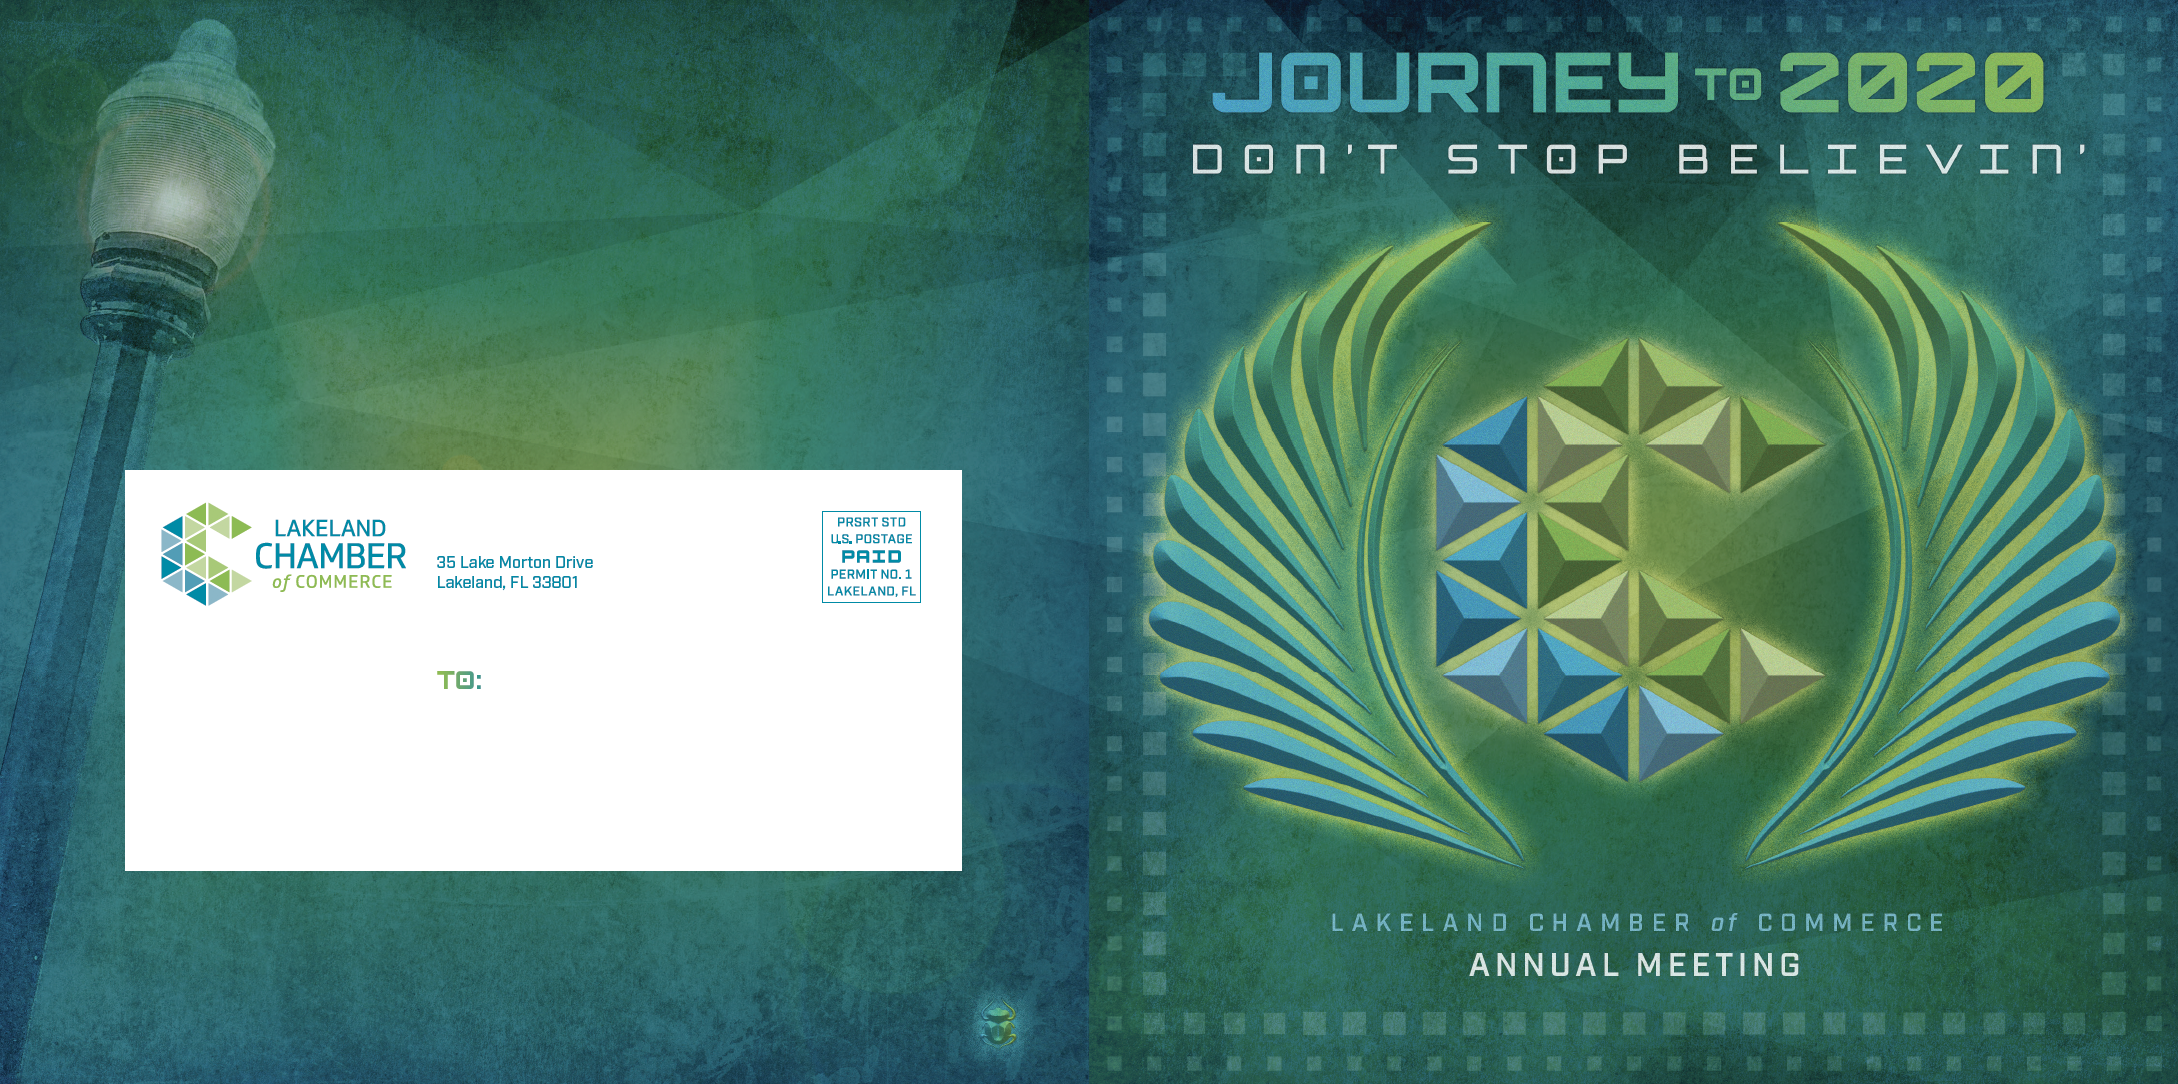 Journey to 2020 Invitation